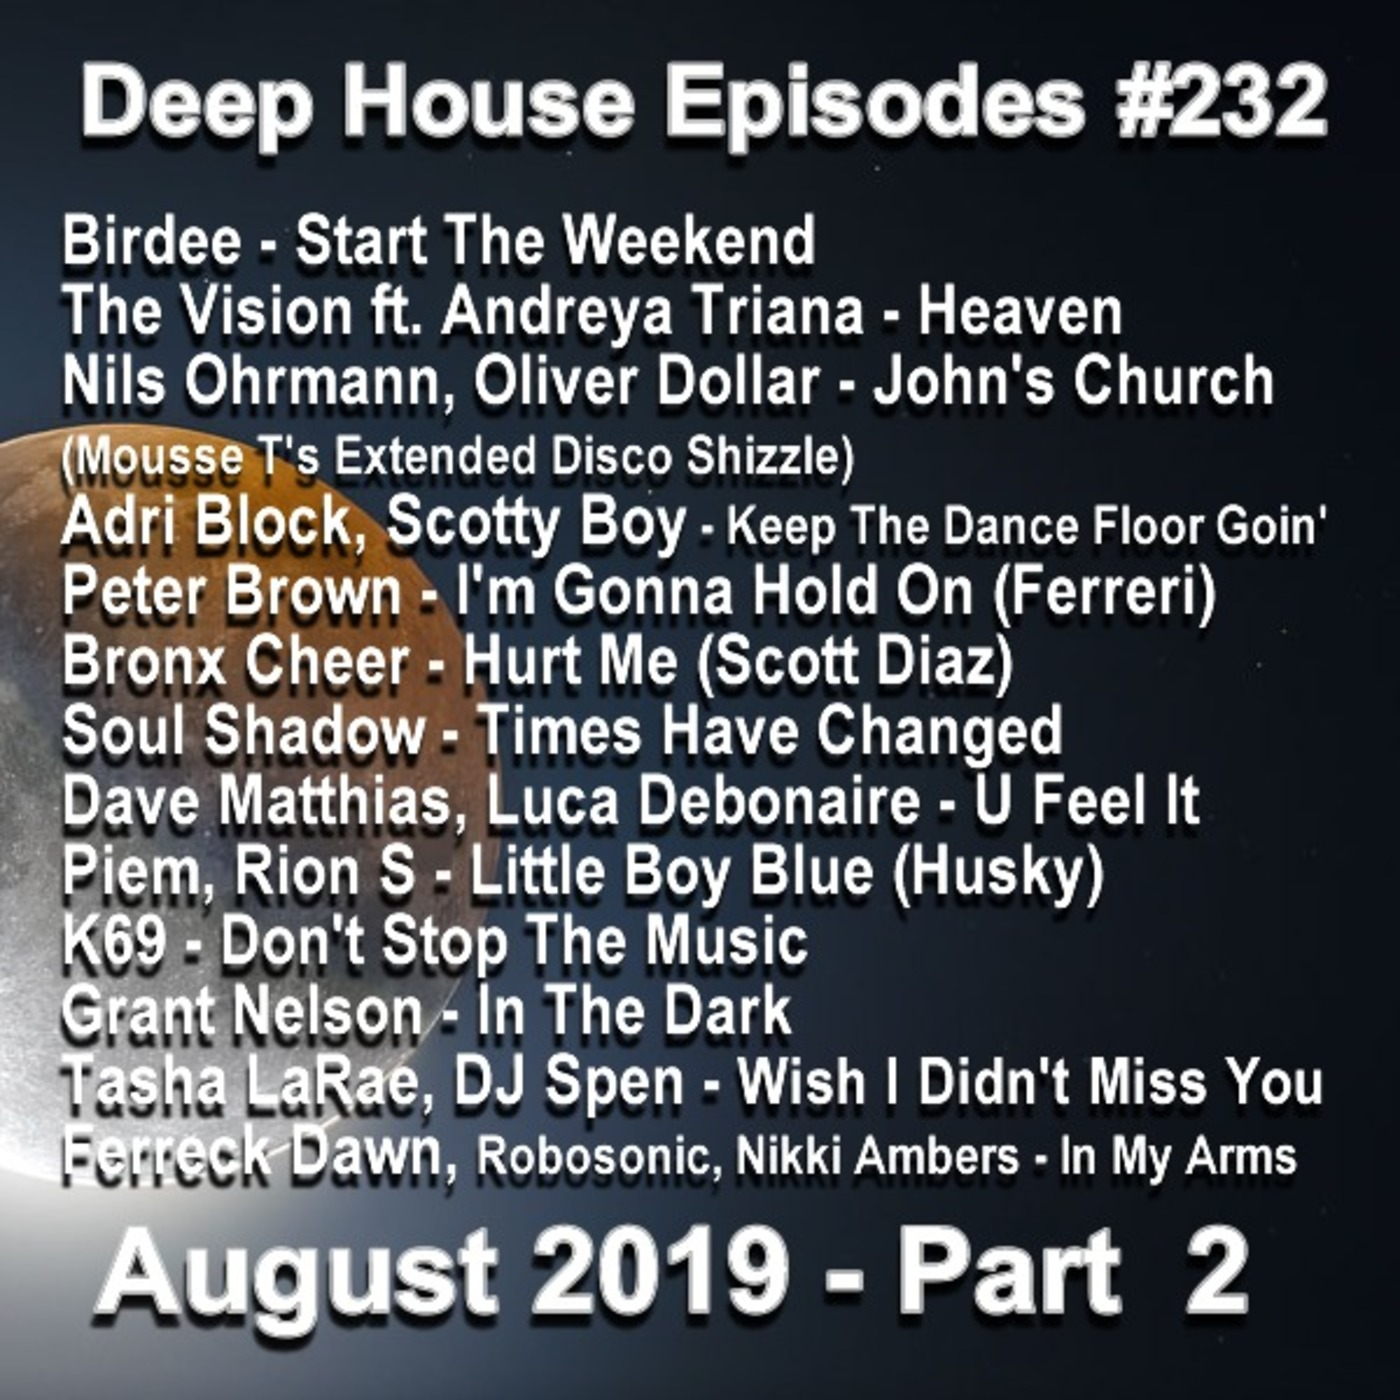 EP232 August 2019 - Part 2 Deep House Episodes podcast